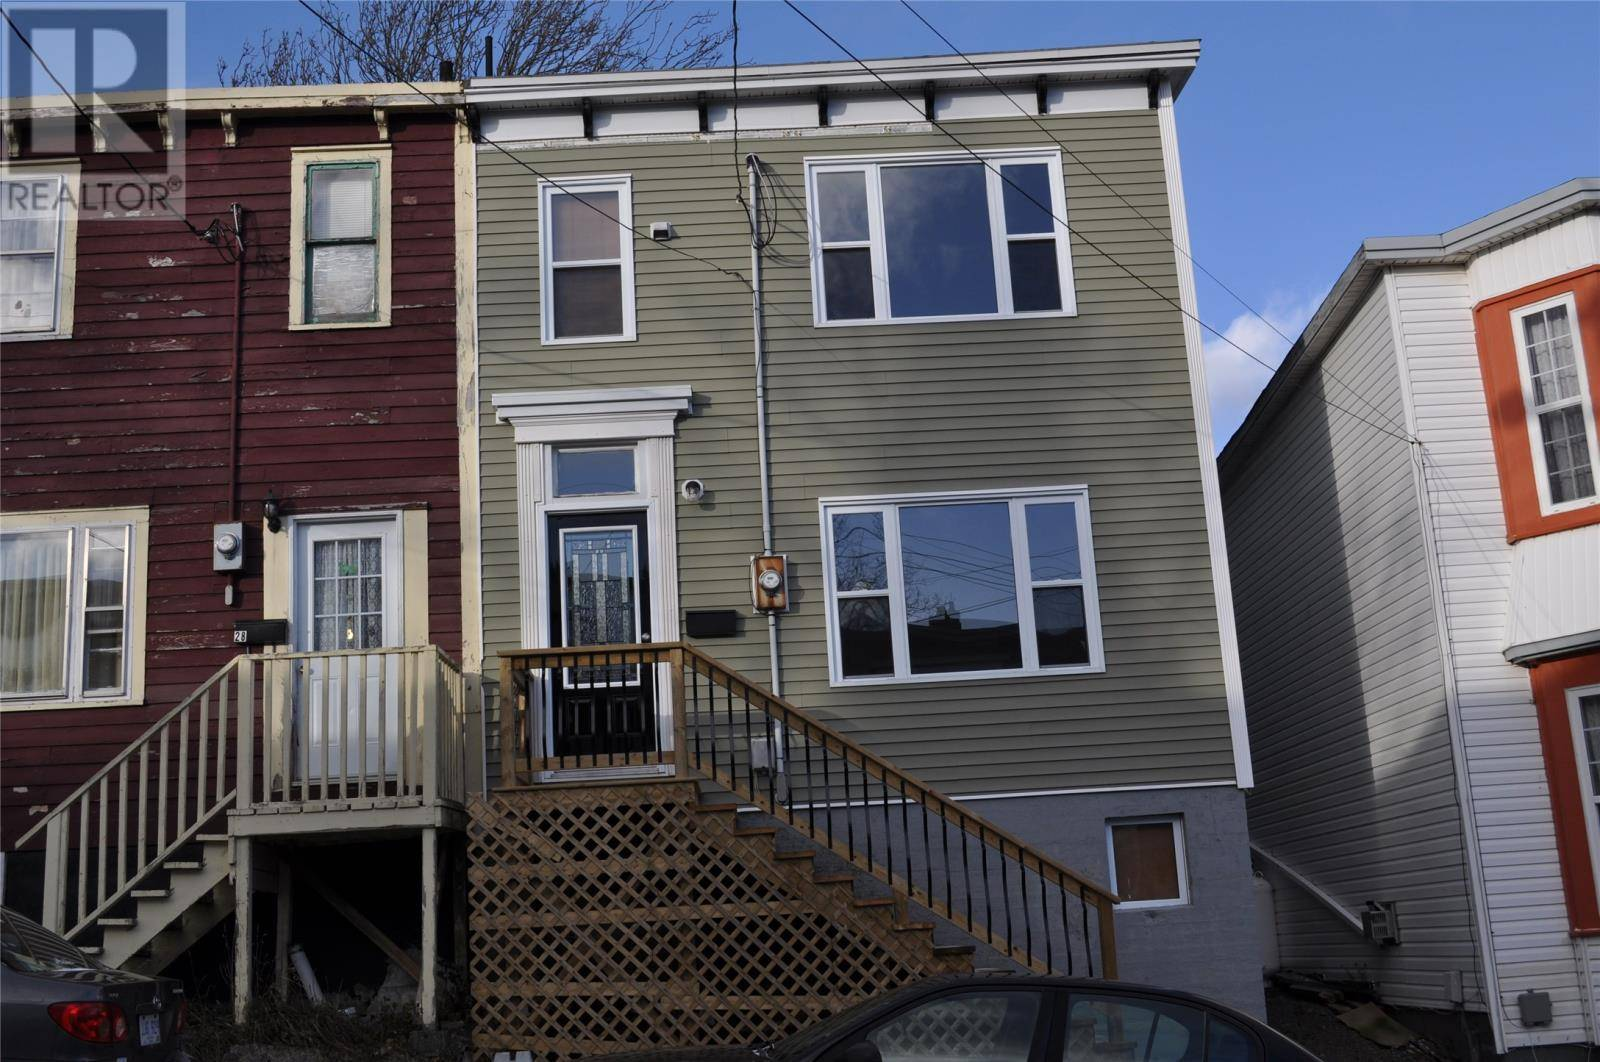 House for sale at 26 Power St St. John's Newfoundland - MLS: 1207520